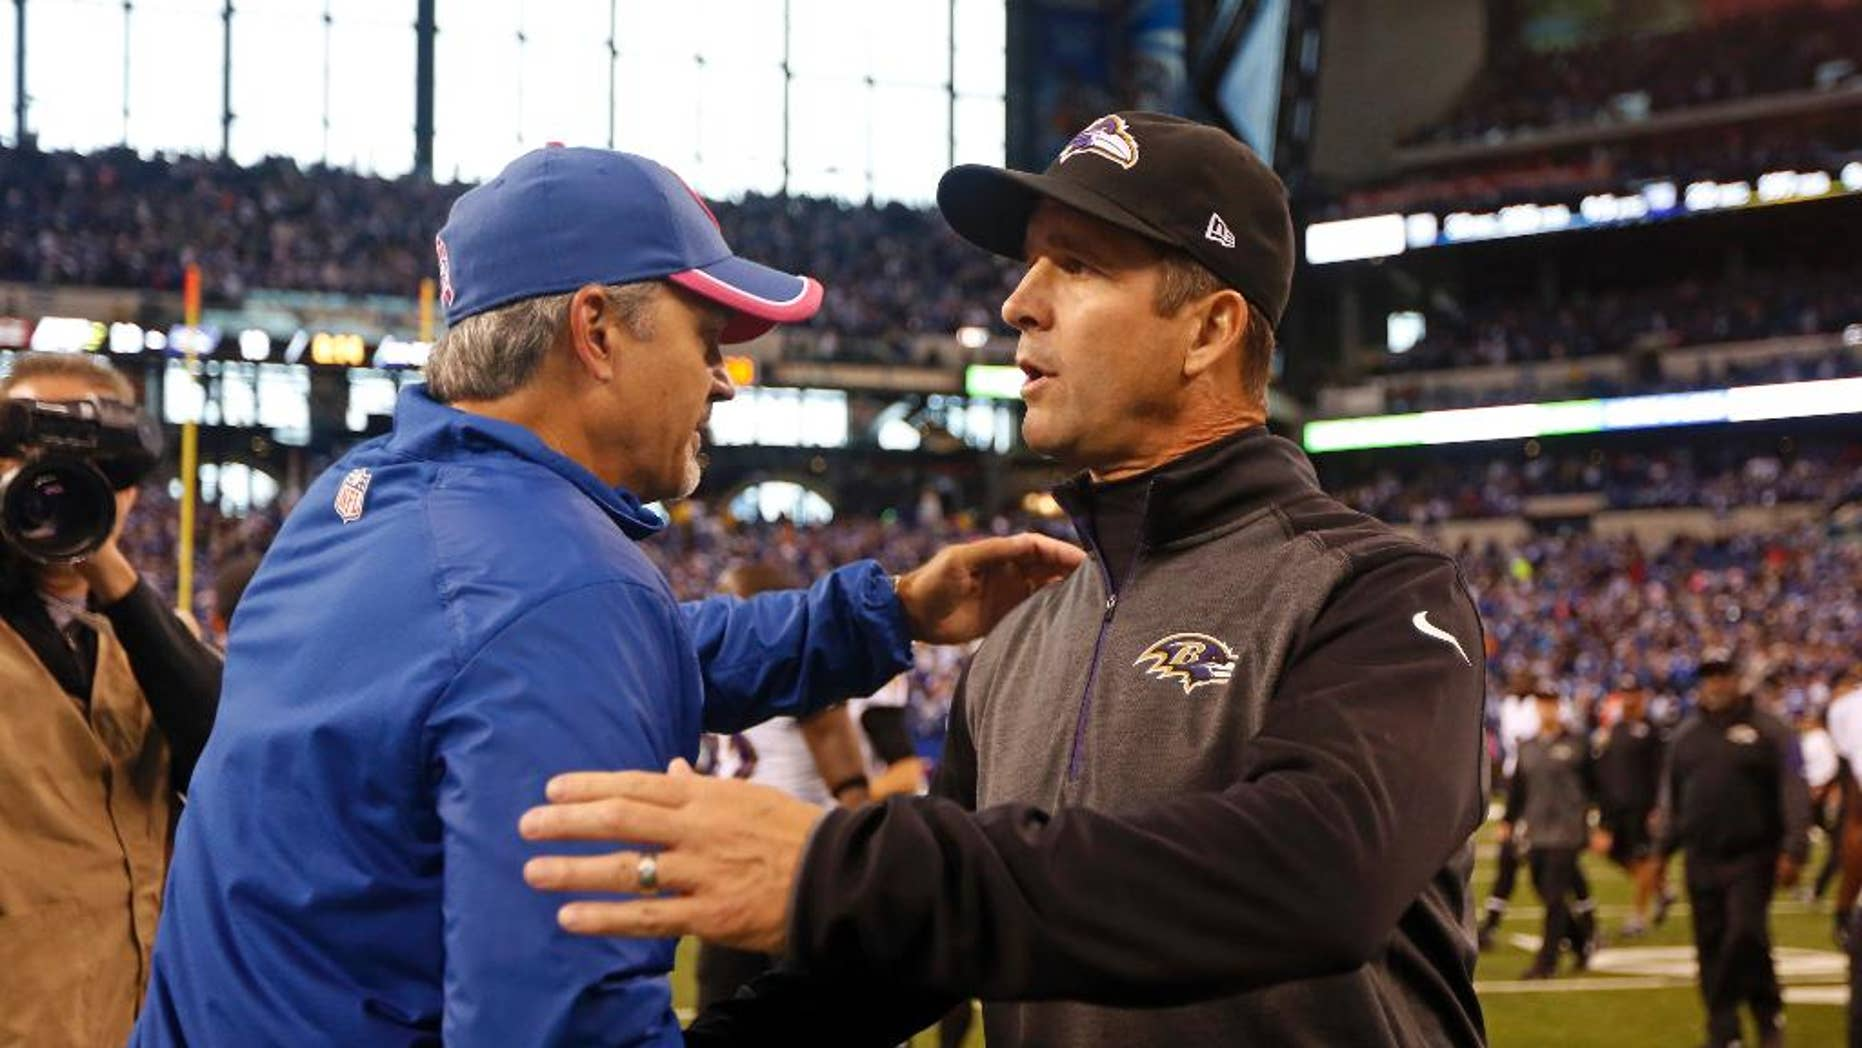 Indianapolis Colts head coach Chuck Pagano, left, greets Baltimore Ravens head coach John Harbaugh following an NFL football game in Indianapolis, Sunday, Oct. 5, 2014. The Colts defeated the Ravens 20-13. (AP Photo/Jeff Roberson)